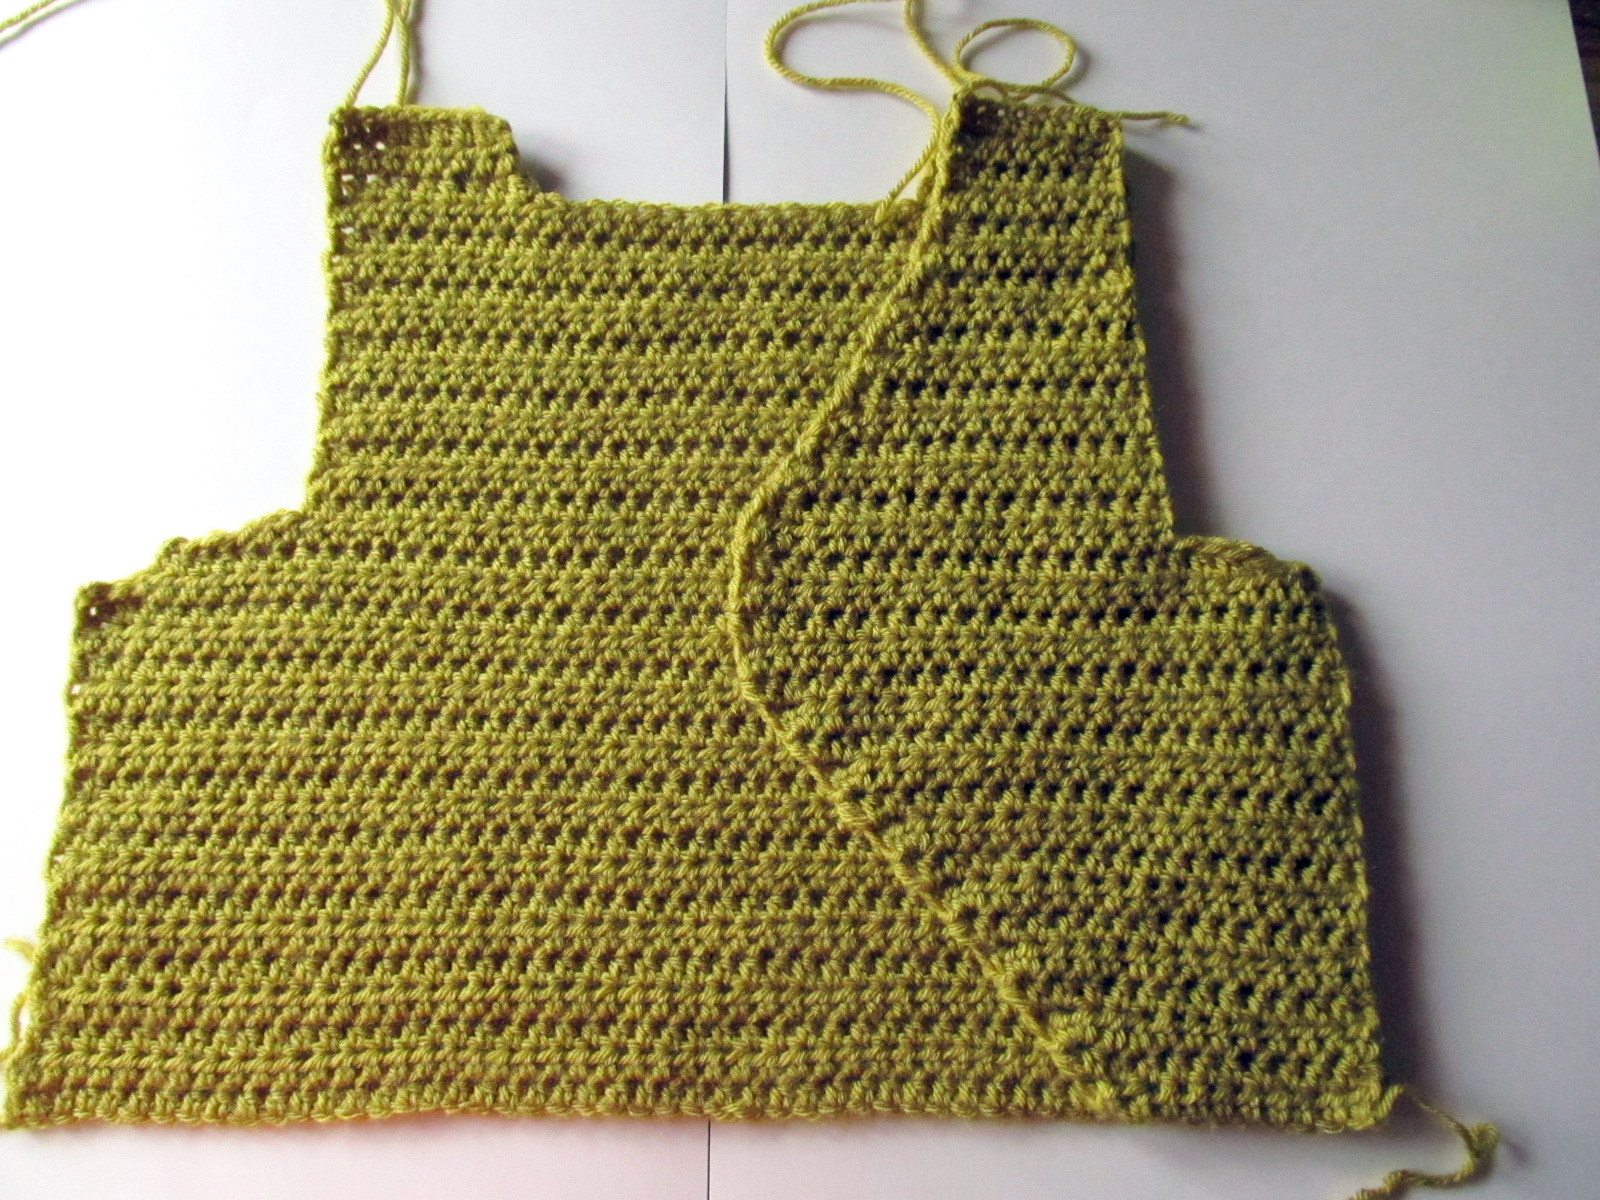 LazyTcrochet: New Crochet Vest or Bolero